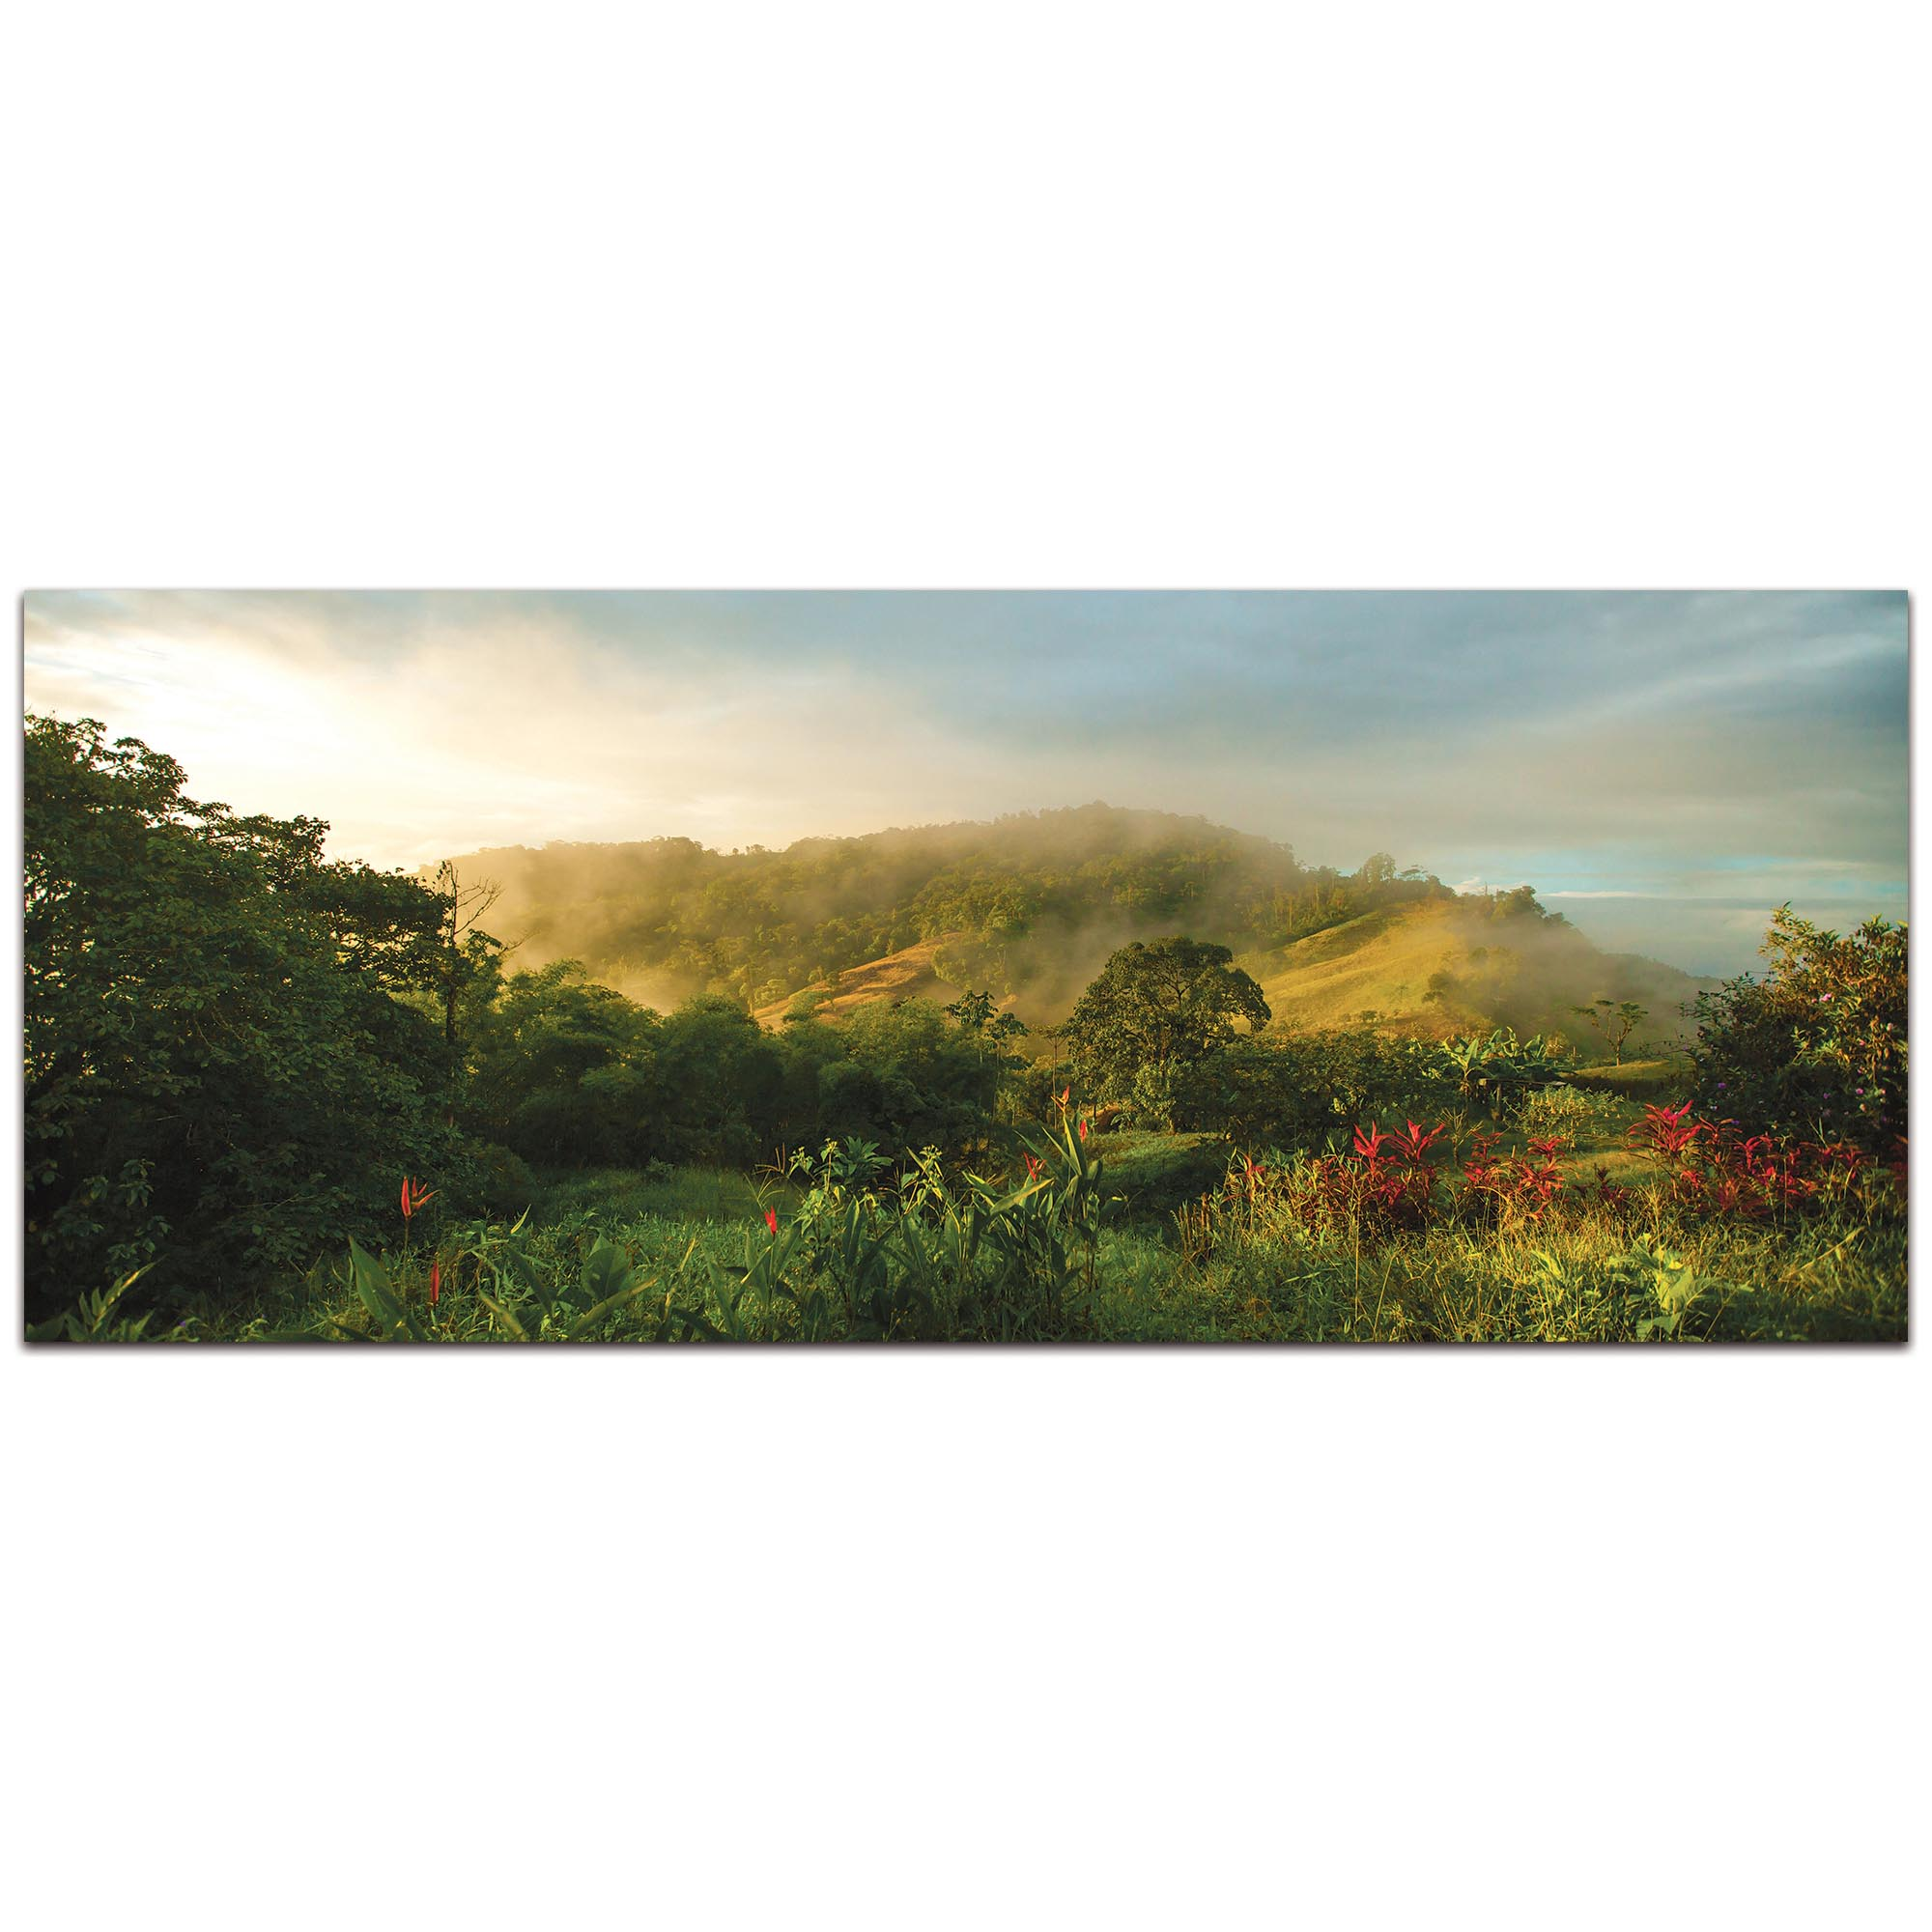 Landscape Photography 'Storybook Hills' - Mountain Scene Art on Metal or Plexiglass